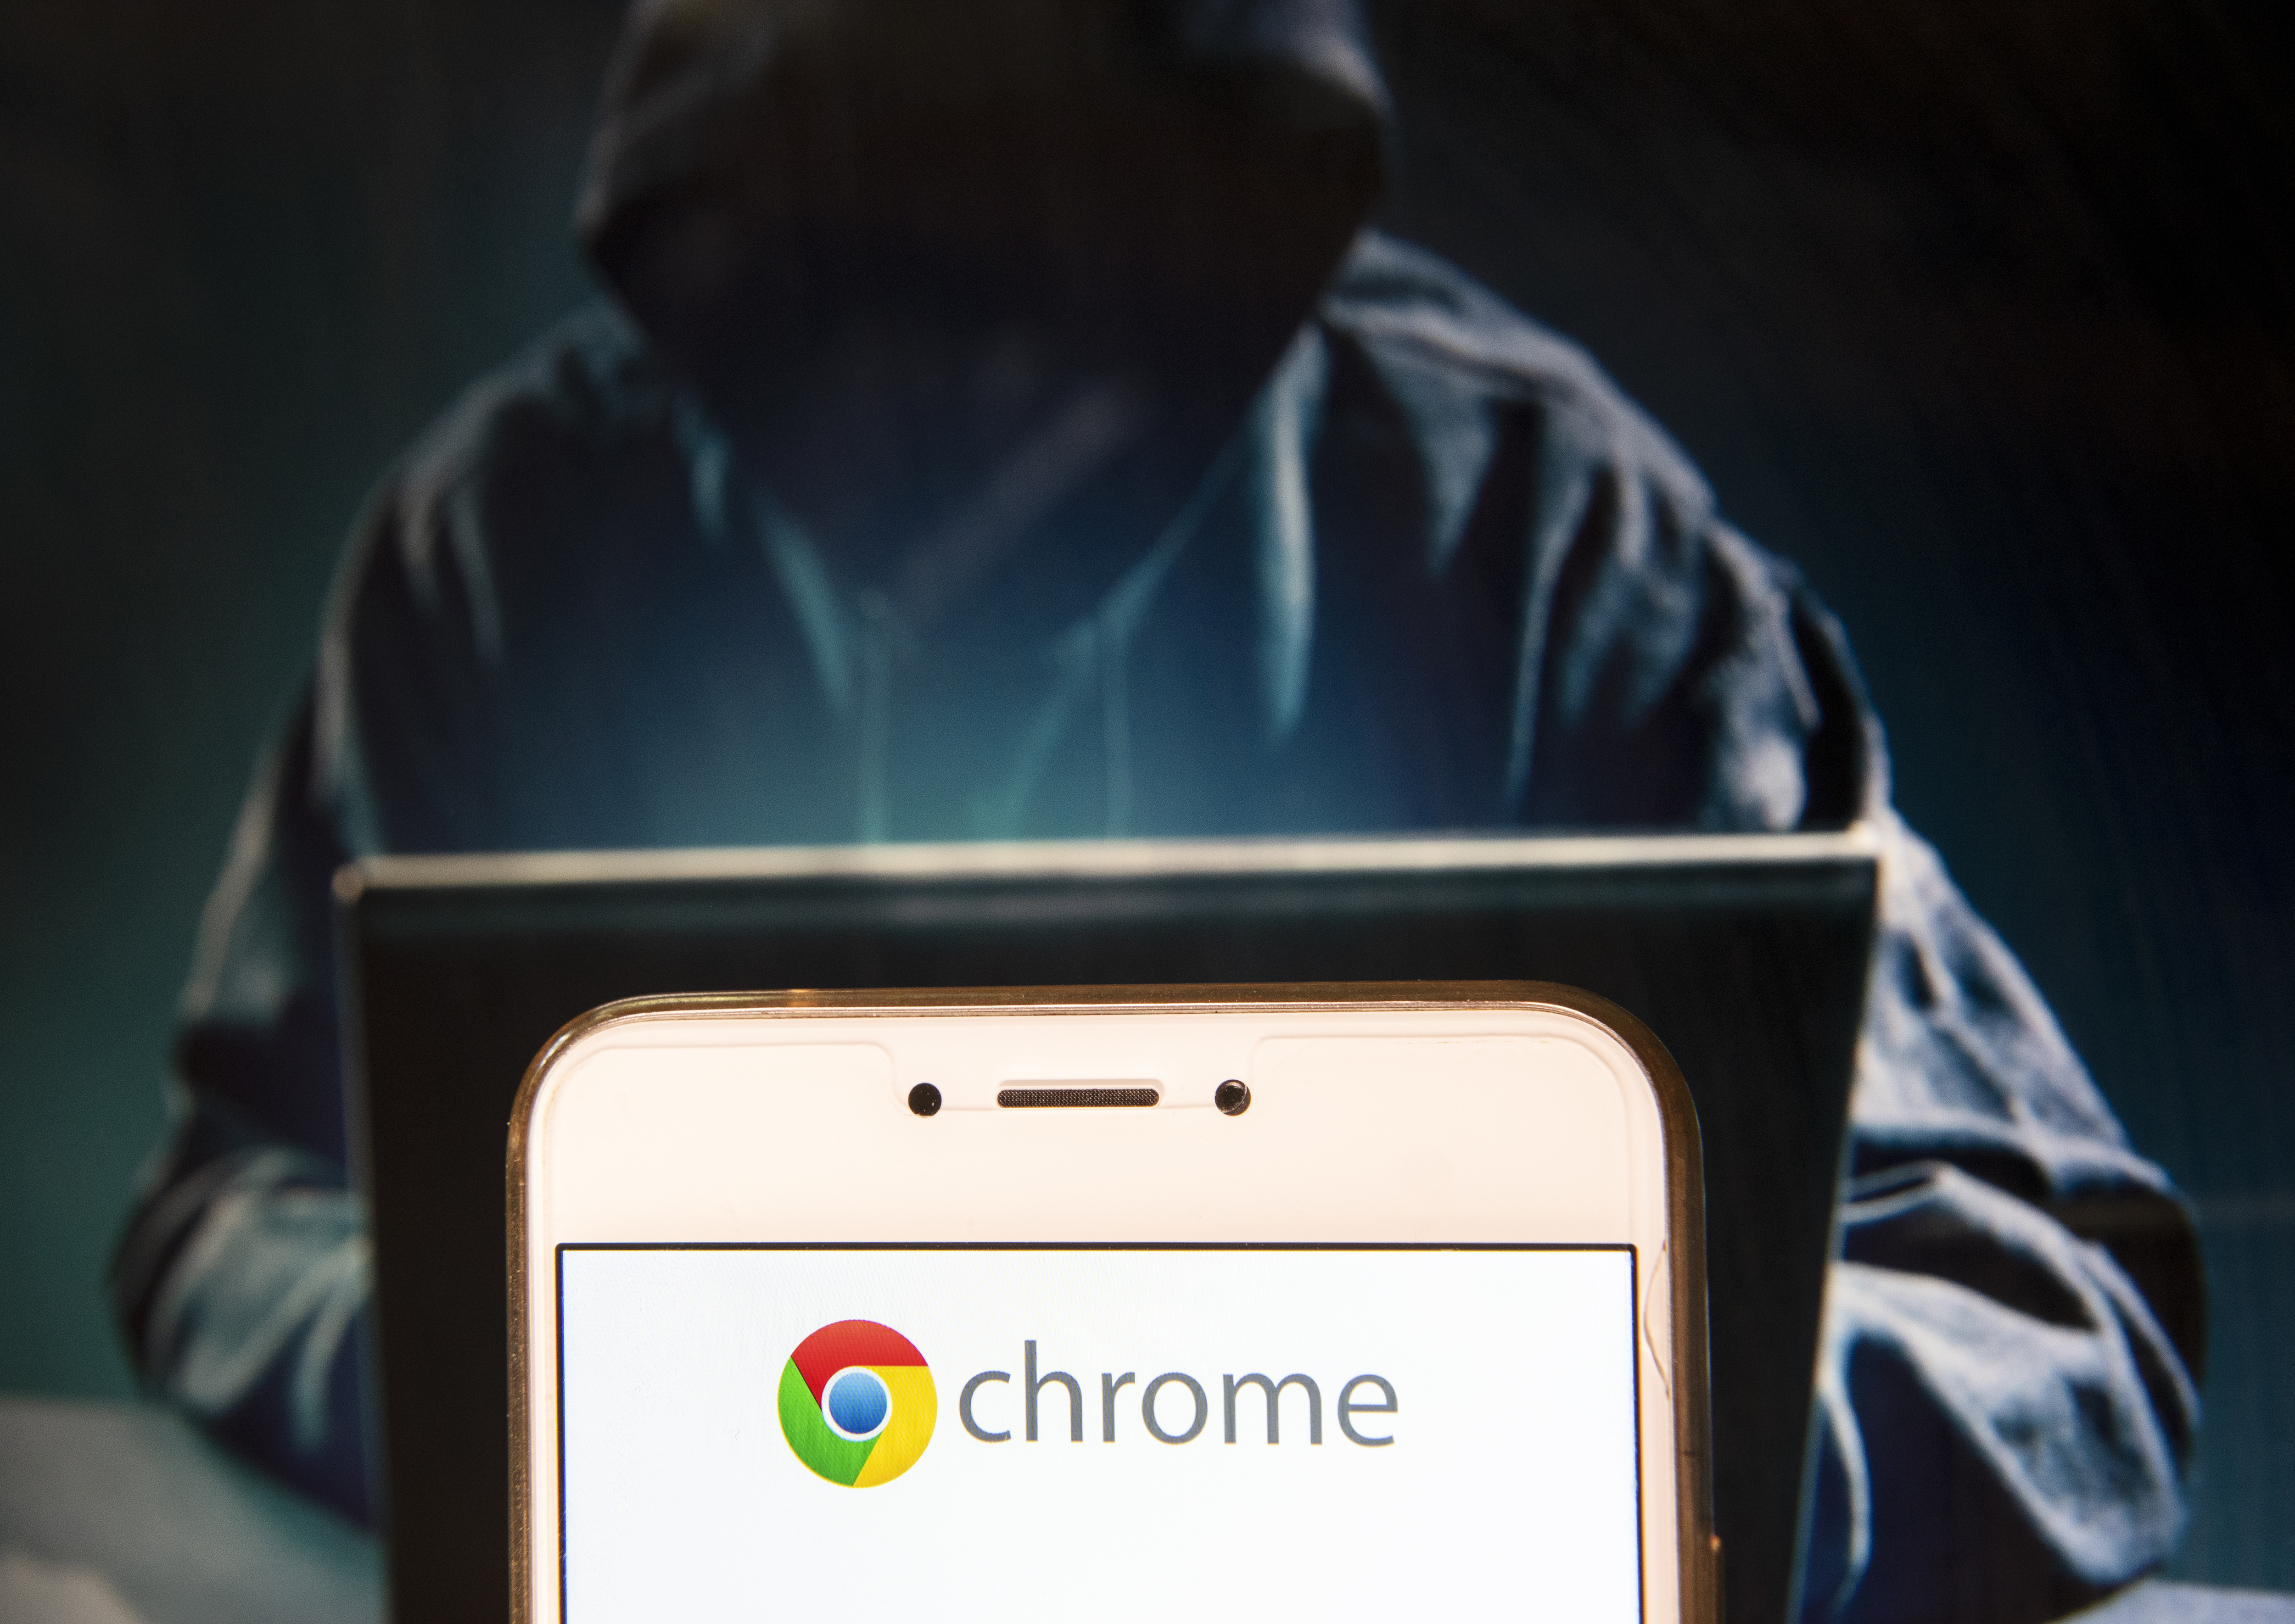 Google says it's making Chrome more private, but advertisers will still track you